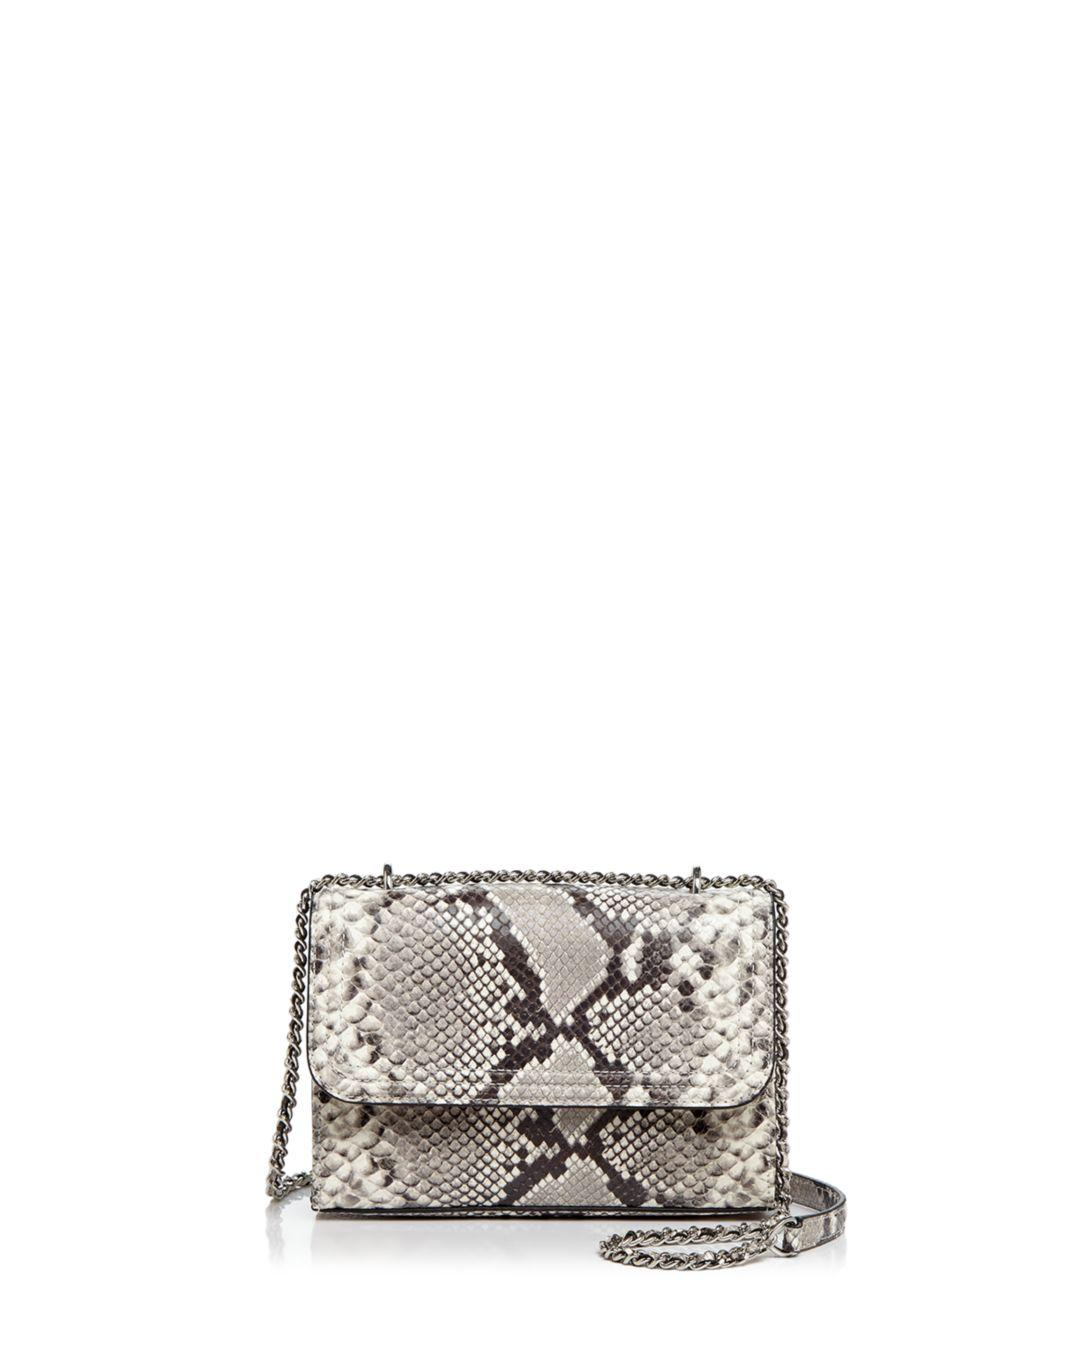 3b928e5a472 Lyst - Tory Burch Fleming Snakeskin Embossed Leather Small ...